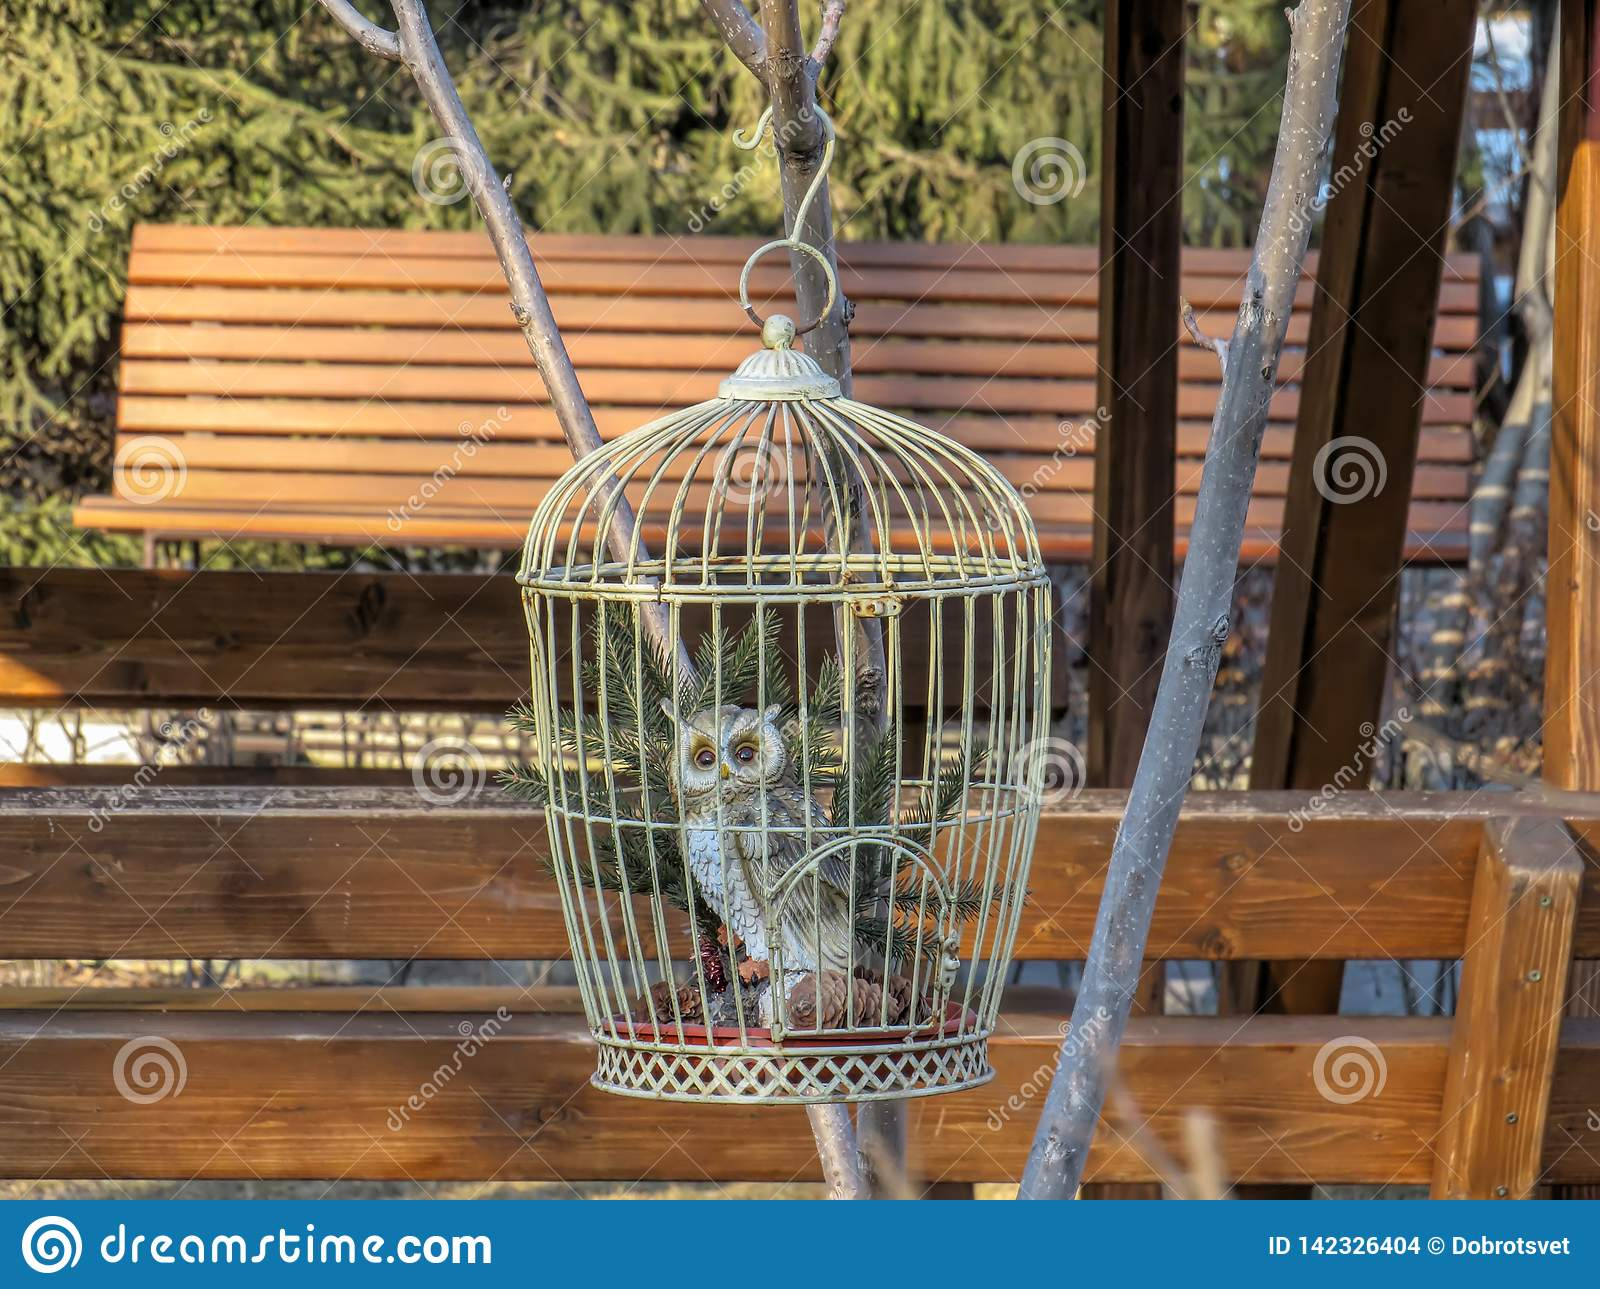 Cage With Owl Figurine Hanging On A Branch In The Garden Stock Photo Image Of Totem Dummy 142326404